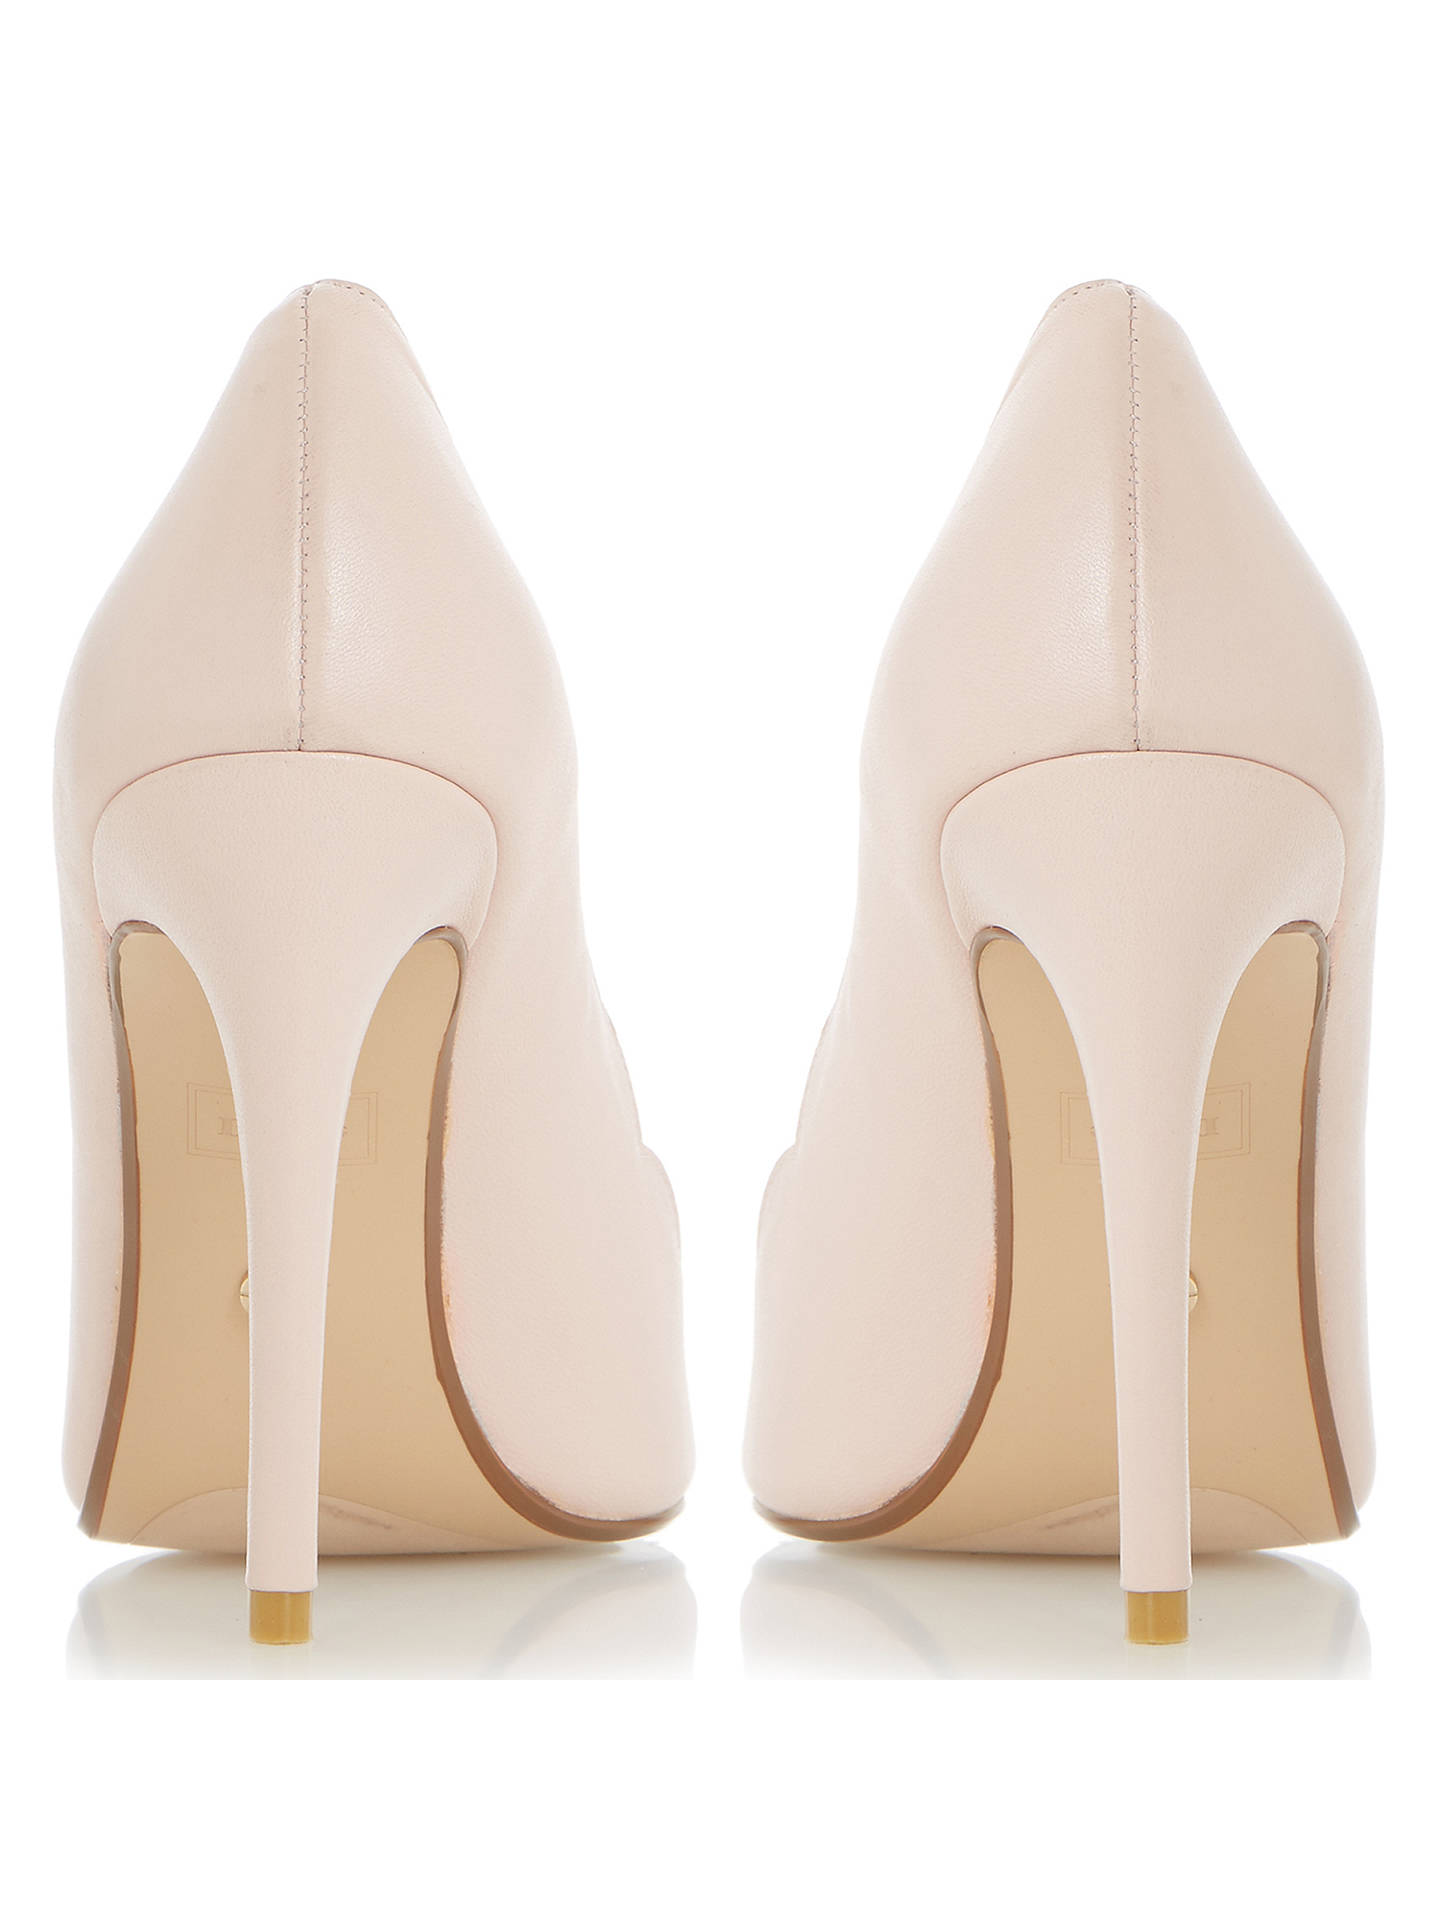 942d21e966 ... Buy Dune Athena Stiletto Heeled Court Shoes, Blush, 5 Online at  johnlewis.com ...